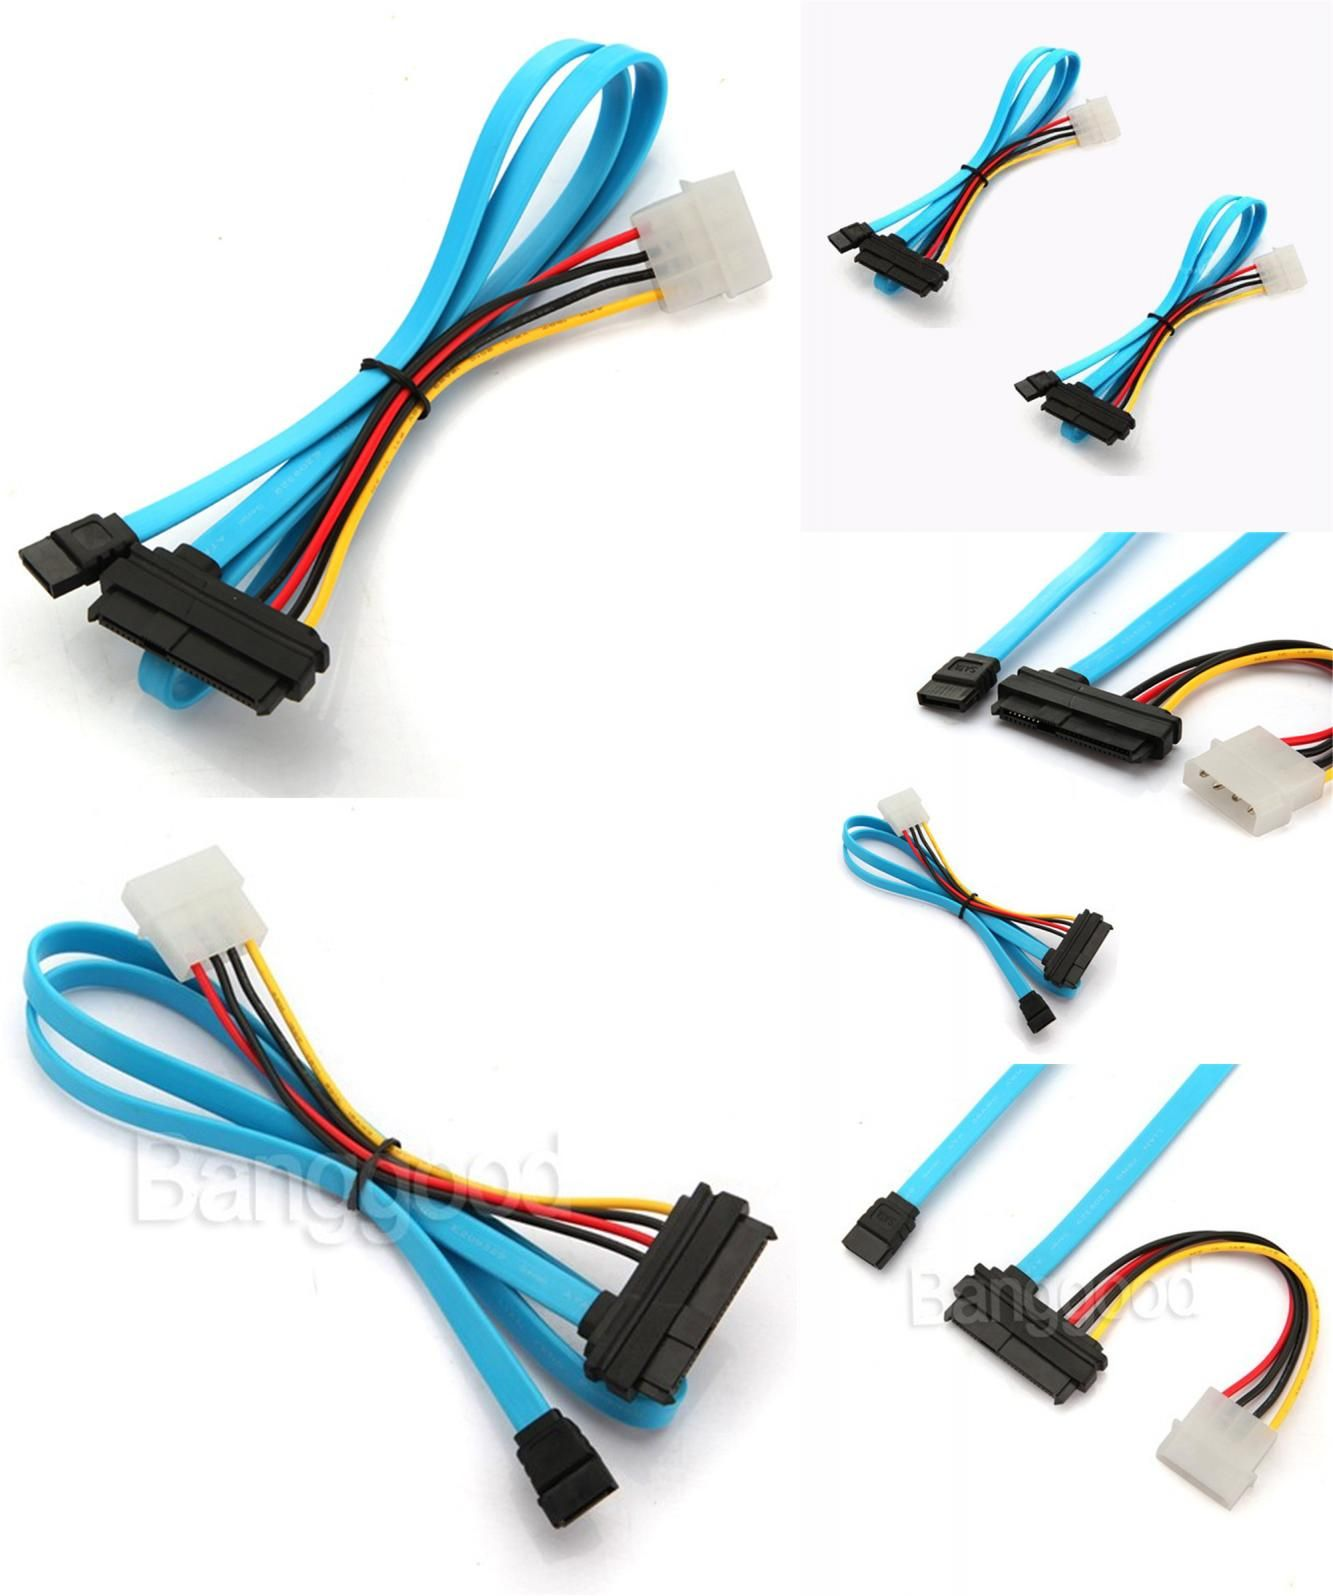 medium resolution of  visit to buy 1pcs 7 pin sata serial female ata to sas 29 pin connector cable 4 pin male power cable adapter converter for hard disk drive advertisement